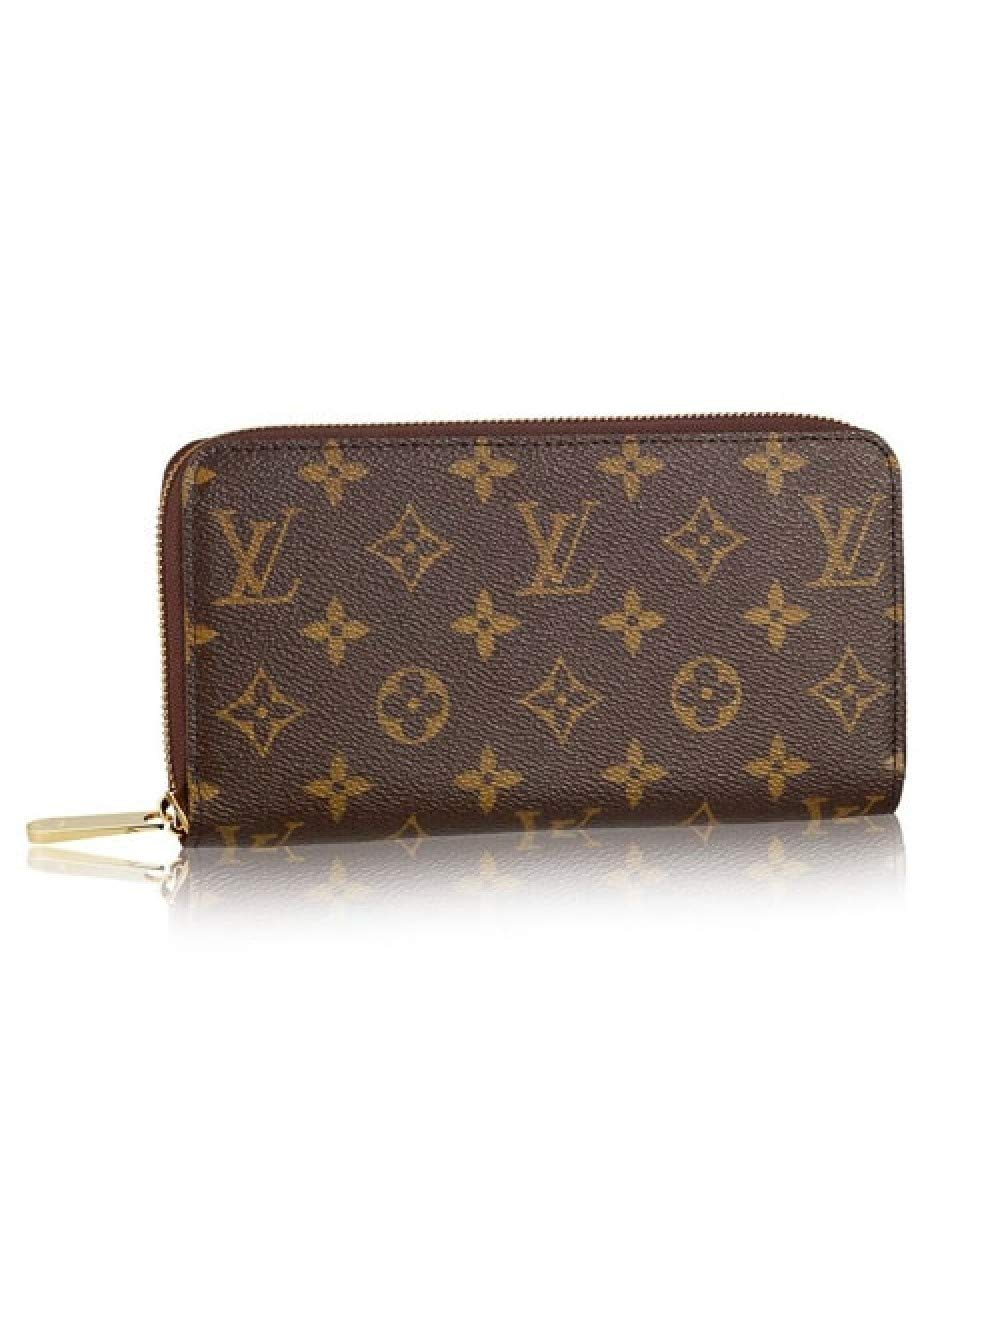 DMYTROVITCHUK Zippy Style Monogram Canvas Wallet With Beige Lining for Woman and Man By Dmytro Vitchuk